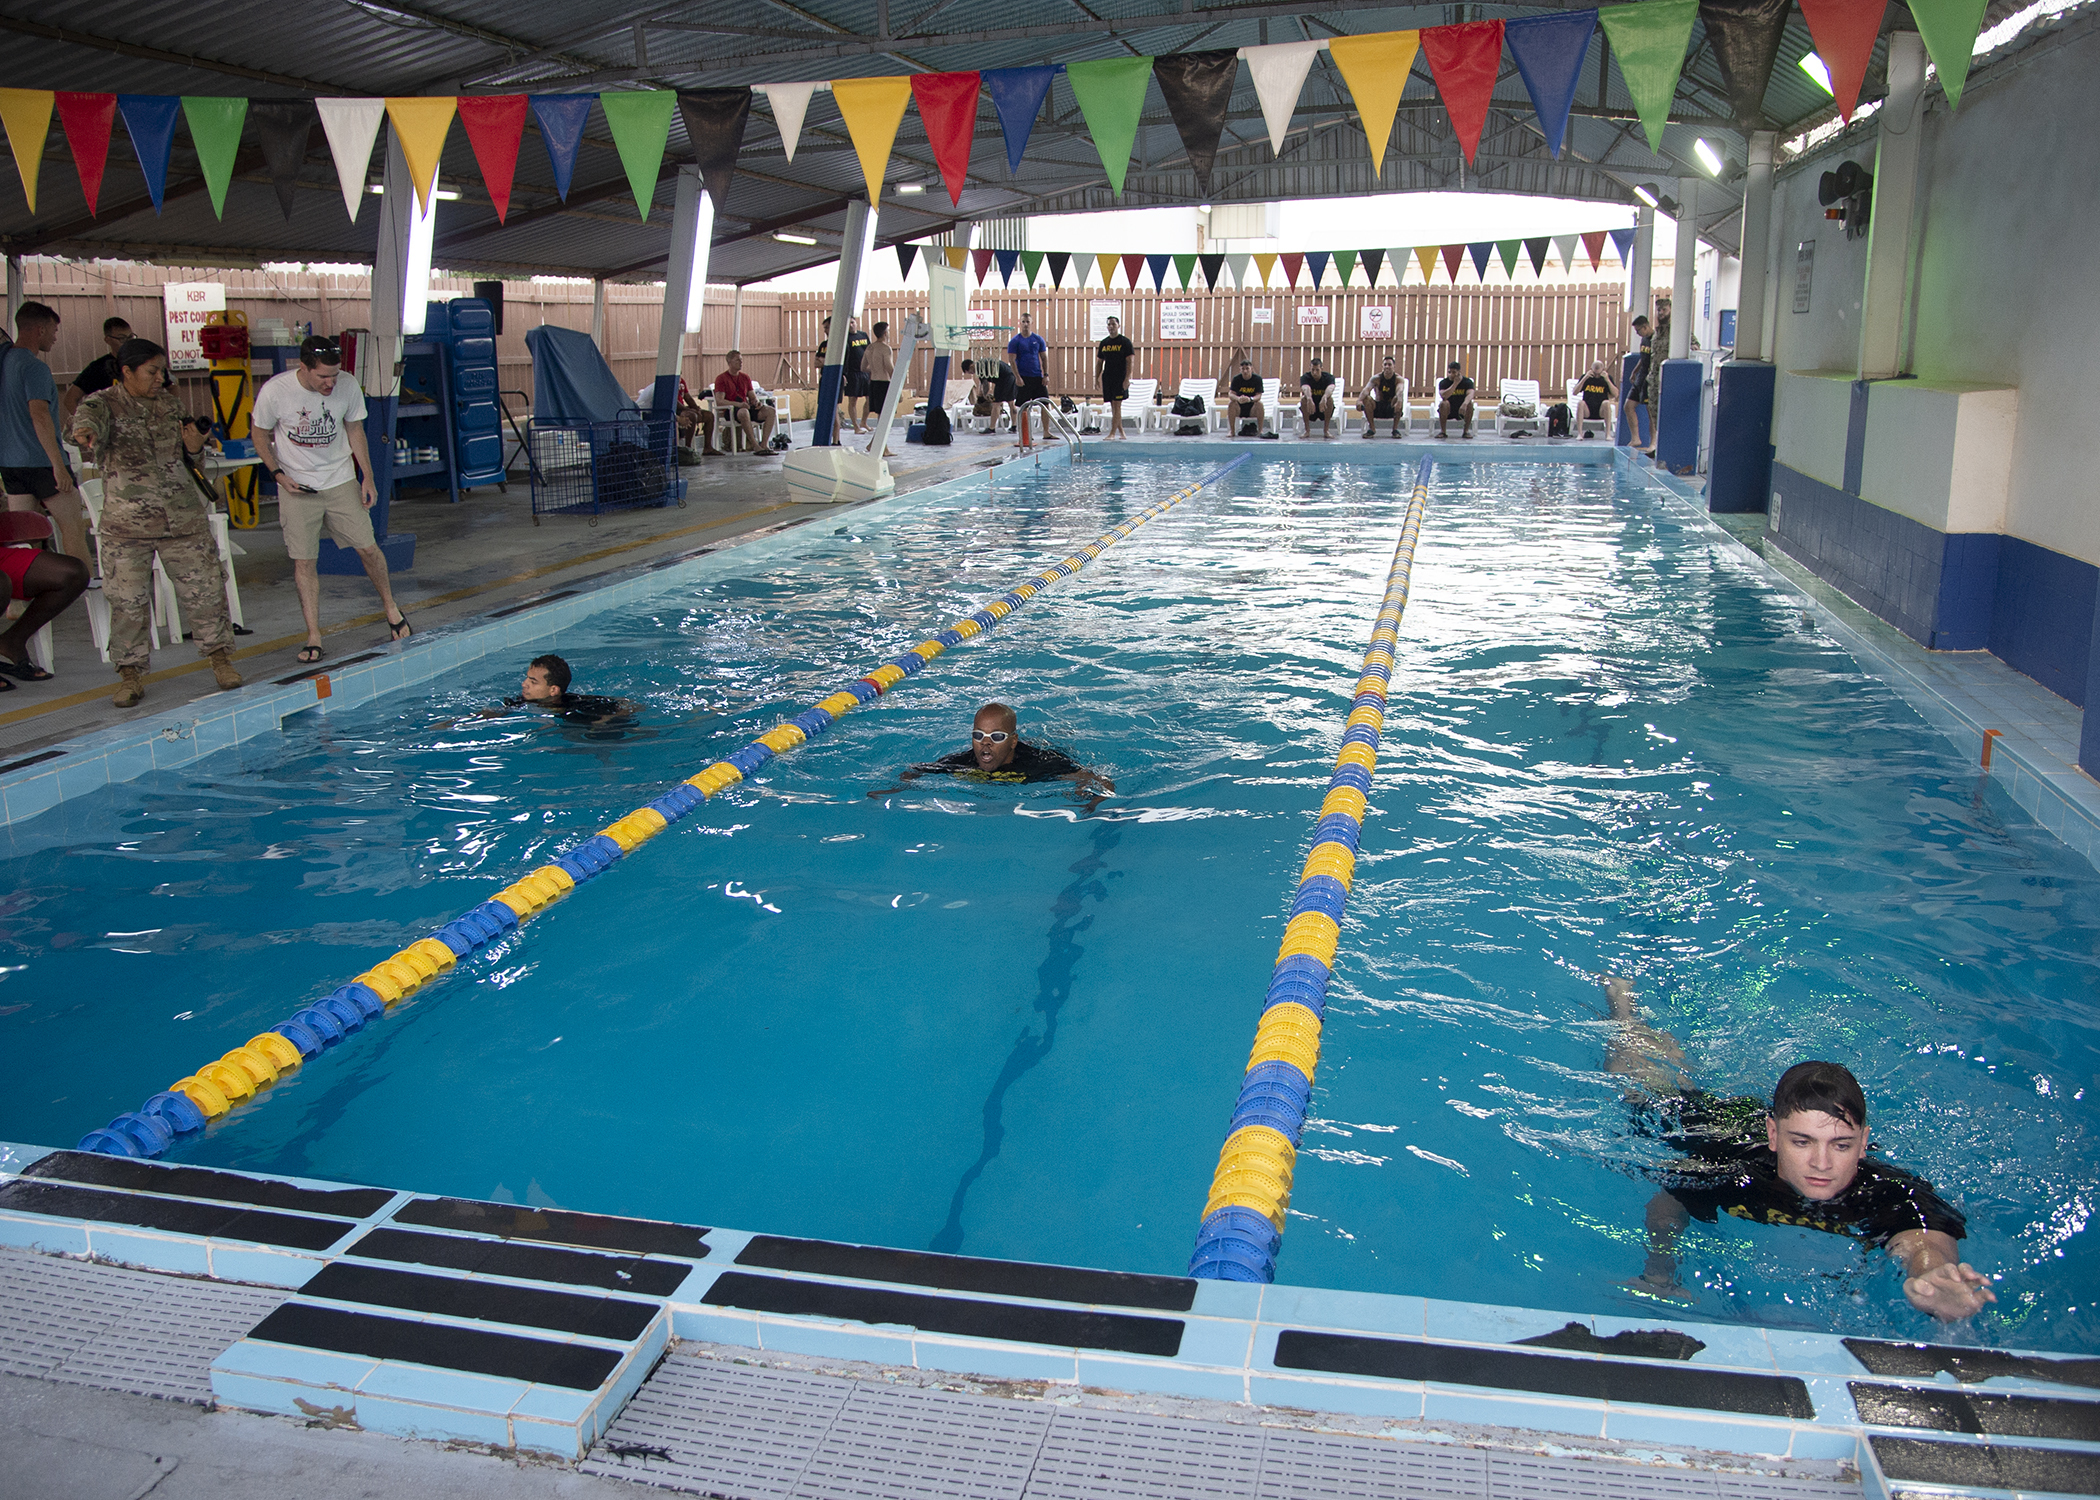 U.S. Army Soldiers from Task Force Alamo, Texas National Guard, assigned to Combined Joint Task Force-Horn of Africa (CJTF-HOA), Djibouti, compete in a swim competition for the German Armed Forces Badge (GAFB) for Military Proficiency in Djibouti, Jan. 16, 2019. The GAFB is awarded to and worn by German service members of all ranks. Allied service members may also be awarded the badge, subject to their nations' uniform regulations. (U.S. Navy photo by Mass Communication Specialist 1st Class Nick Scott)